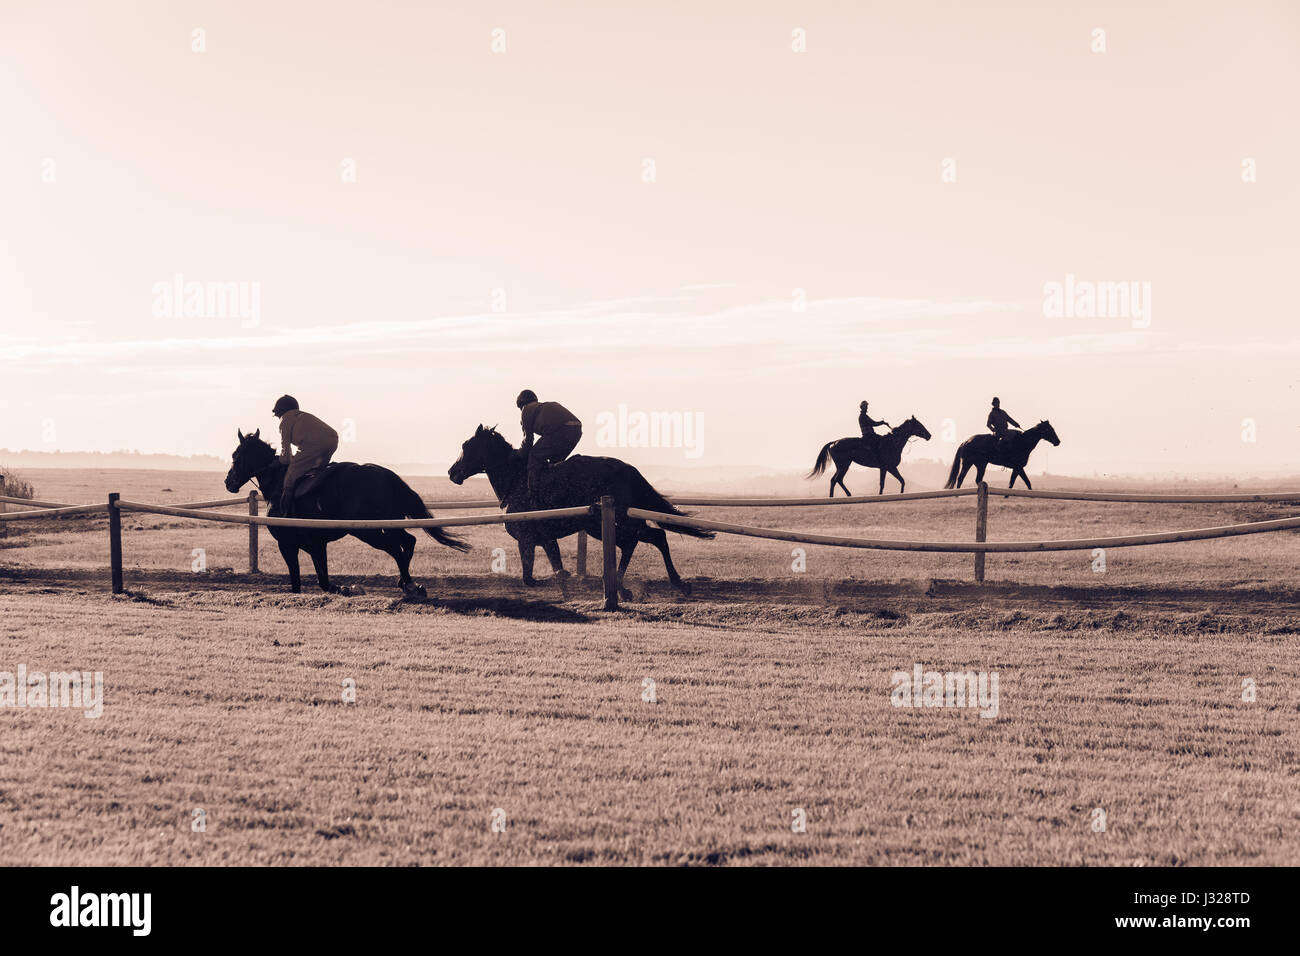 Race horses riders running on countryside training track morning landscape. - Stock Image